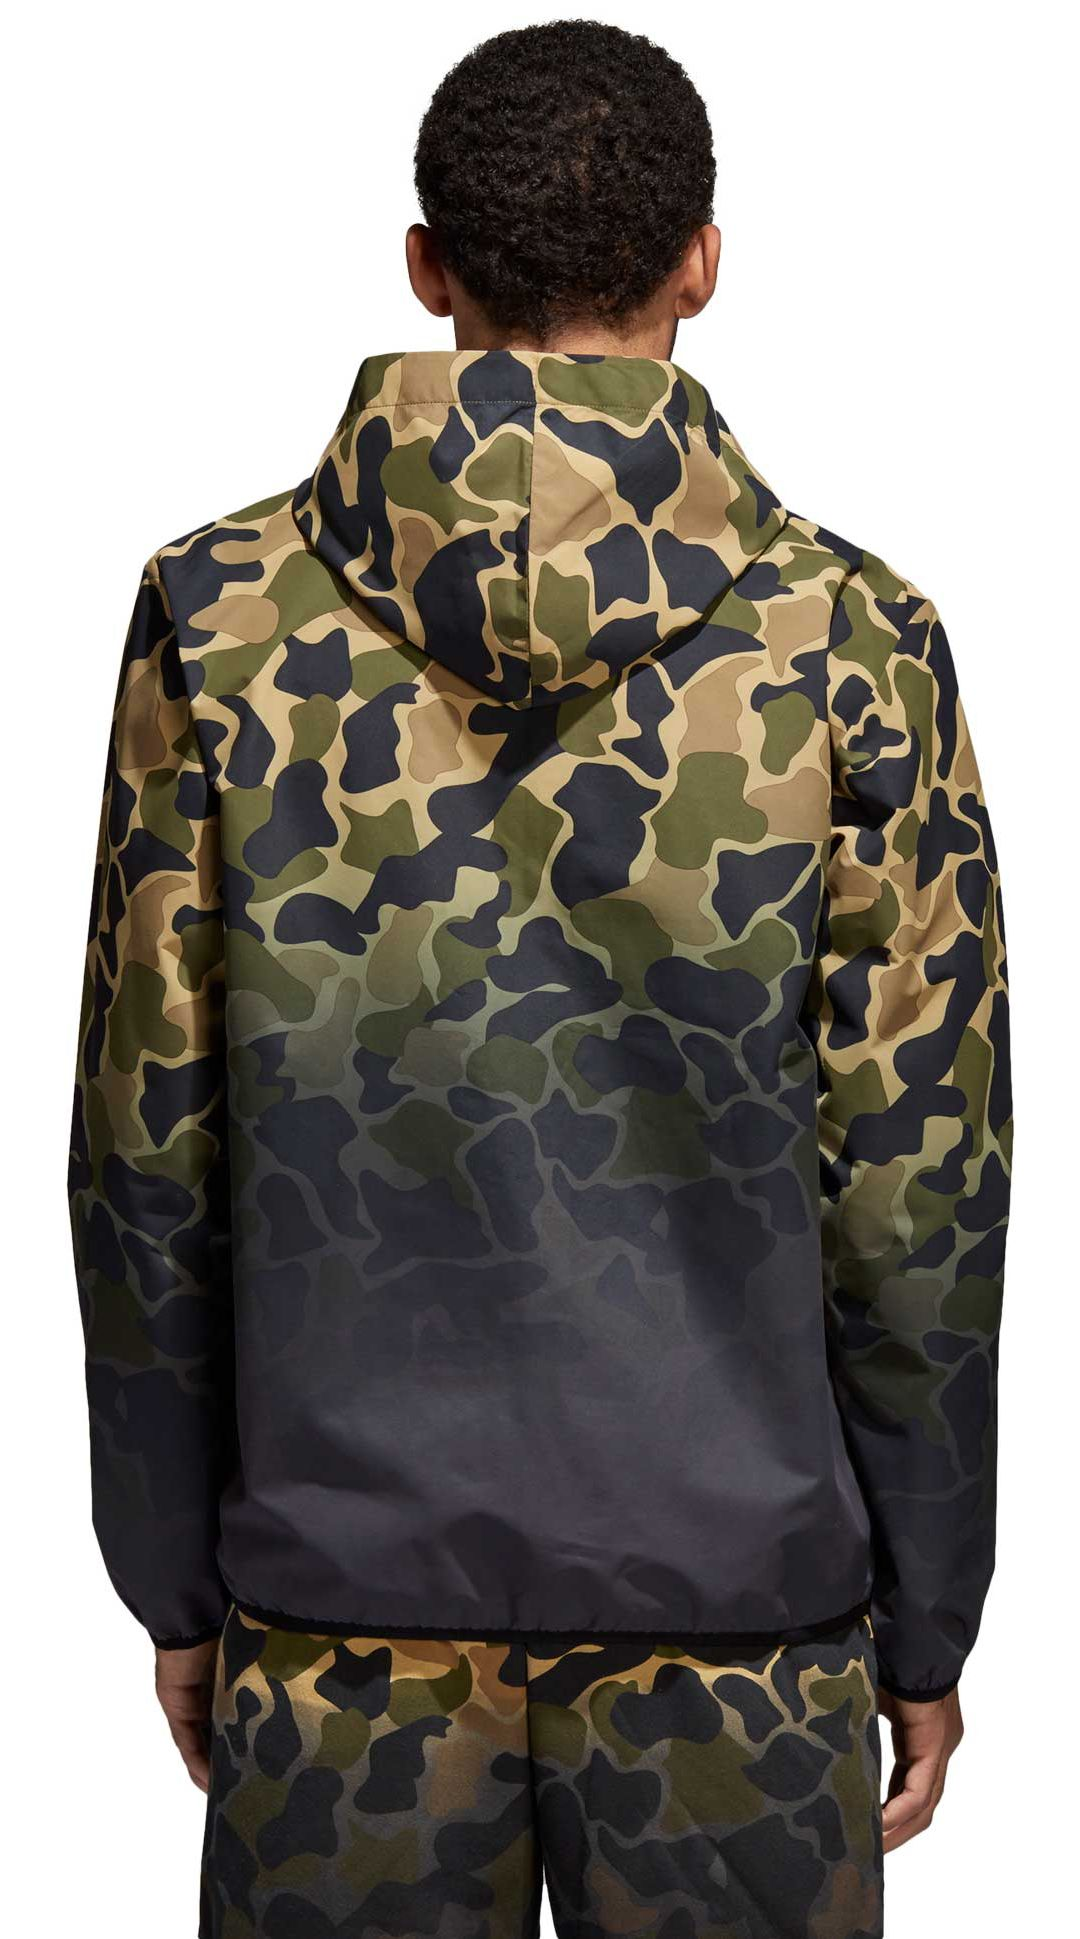 eabd08a648e00 adidas Originals Men's Camo Windbreaker Jacket. noImageFound. Previous. 1. 2